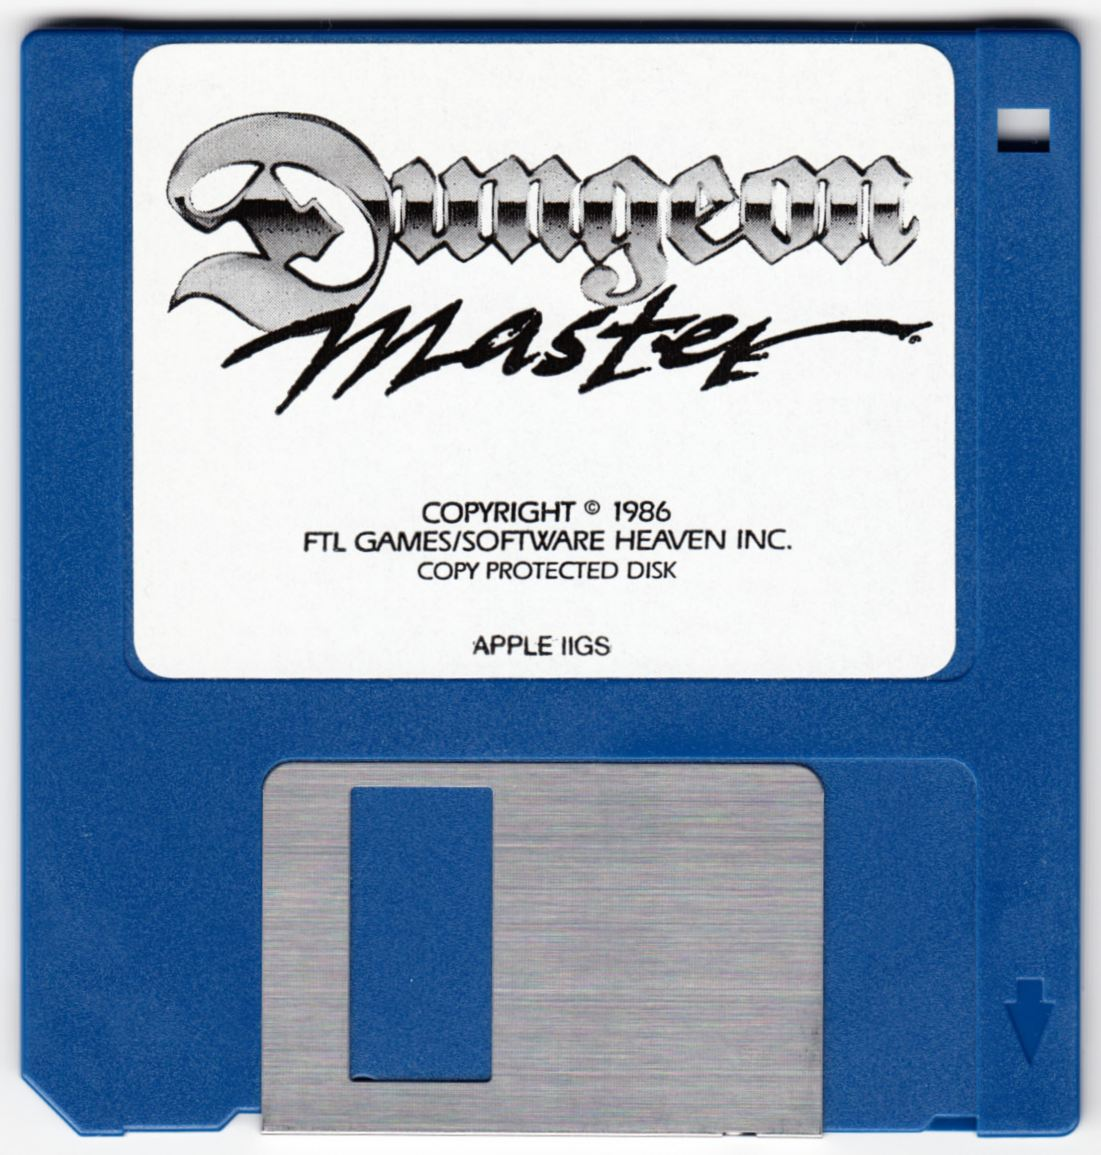 Game - Dungeon Master - US - Apple IIGS - Floppy Disk - Front - Scan